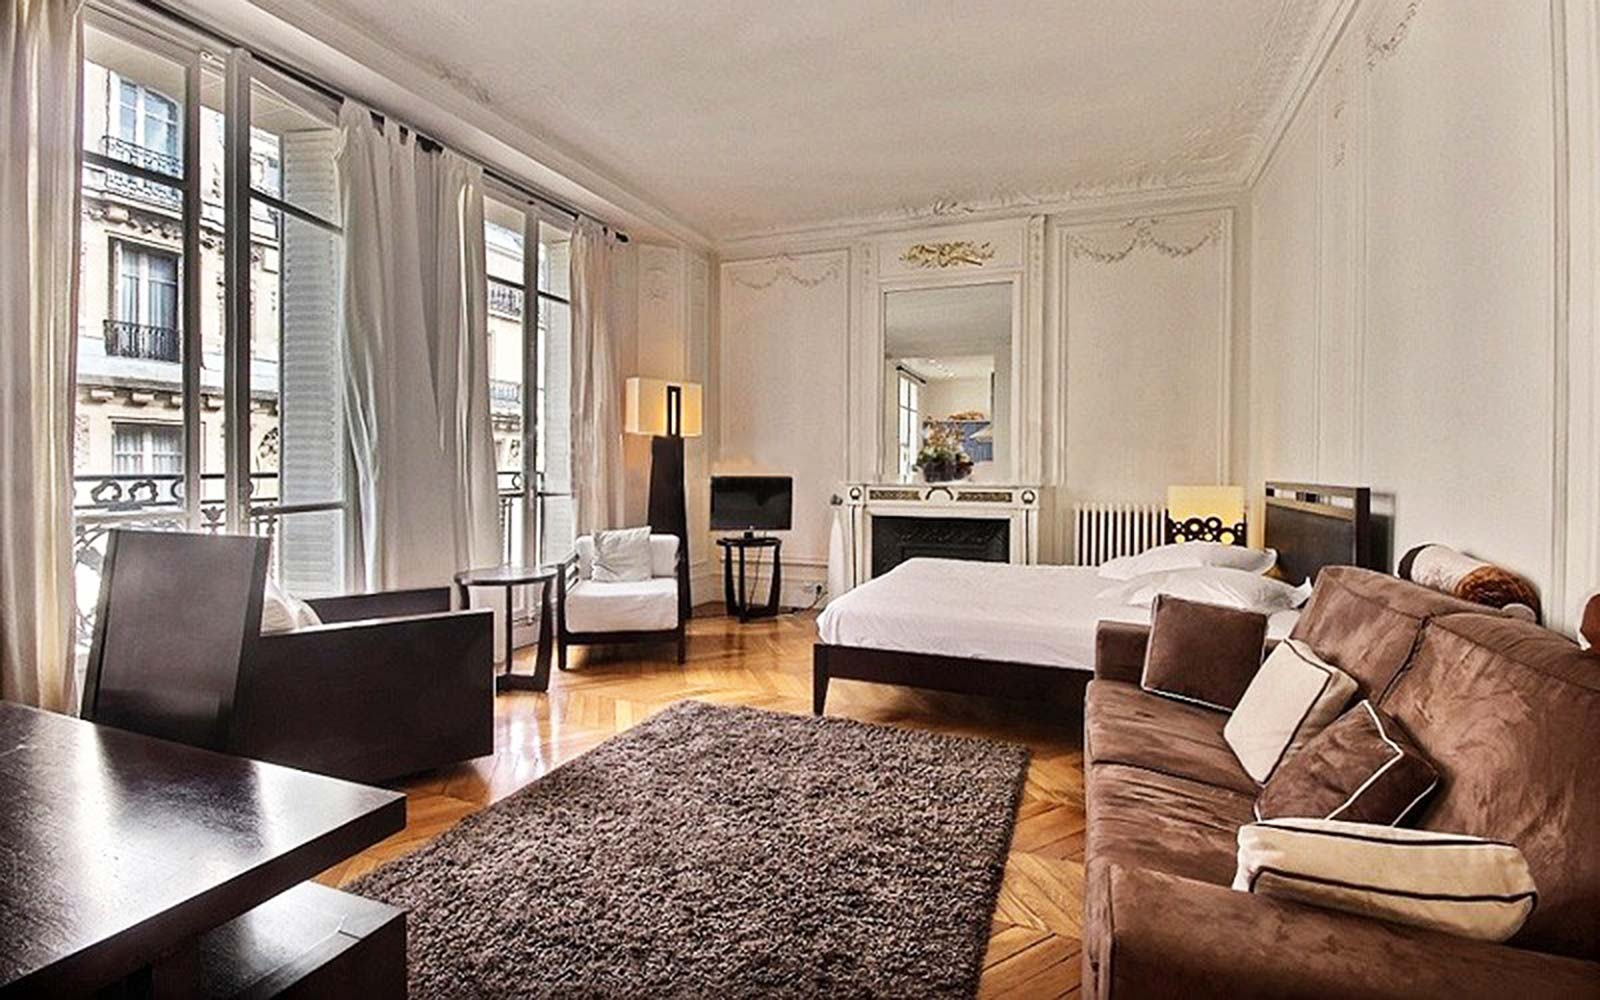 Airbnb Vacation Holiday Rental Paris France Arc de Triomphe